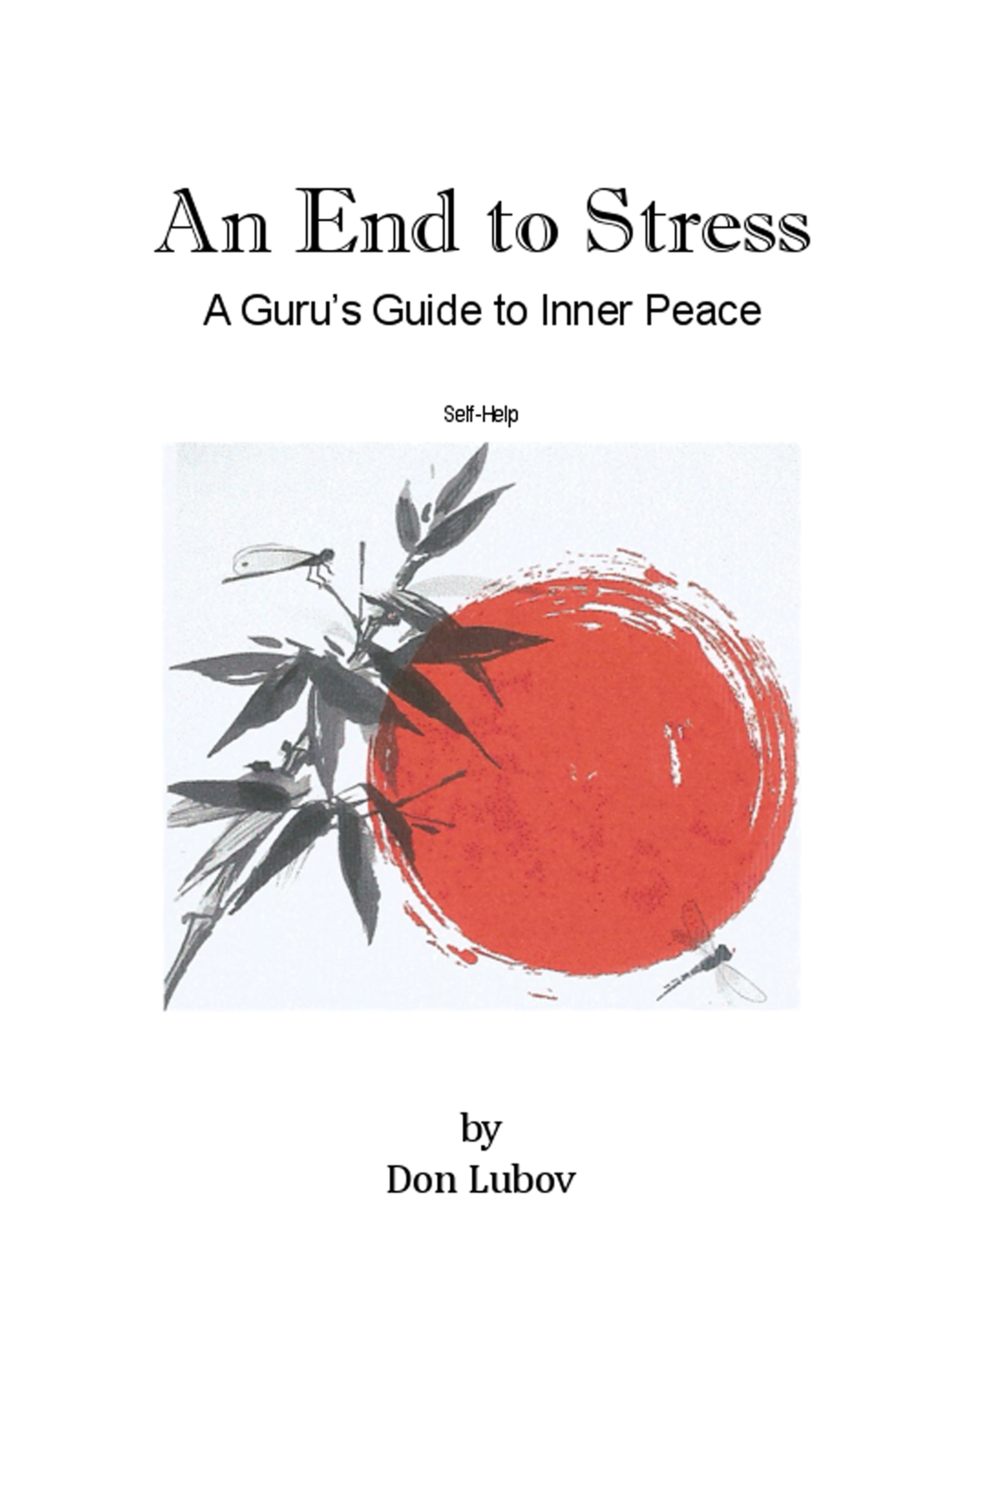 "An End to Stress - ""The two most important days in your life are the day you were born and the day you find out why"" (M.T.). This book will help you understand the why.A Guru's Guide to Inner Peace is an informal path, from stress to inner peace. It follows the ""Six-Step Path"" that has helped thousands of people to live in the present. This guide allows you to accept things as they are, including imperfections in yourself and others.It guides you to make conscious contact with the non-physical presence within all of us. It encourages you to find your natural gifts and talents and to use them to the best of your abilities. You learn to follow your heart, not your head. You learn how to make your life your meditation—informal, spontaneous and creative. You become the best you you can be. You are now ripe for a spiritual awakening. You now know that the world is not so much as we find it, but as we make it.2018, available in print & Kindle"